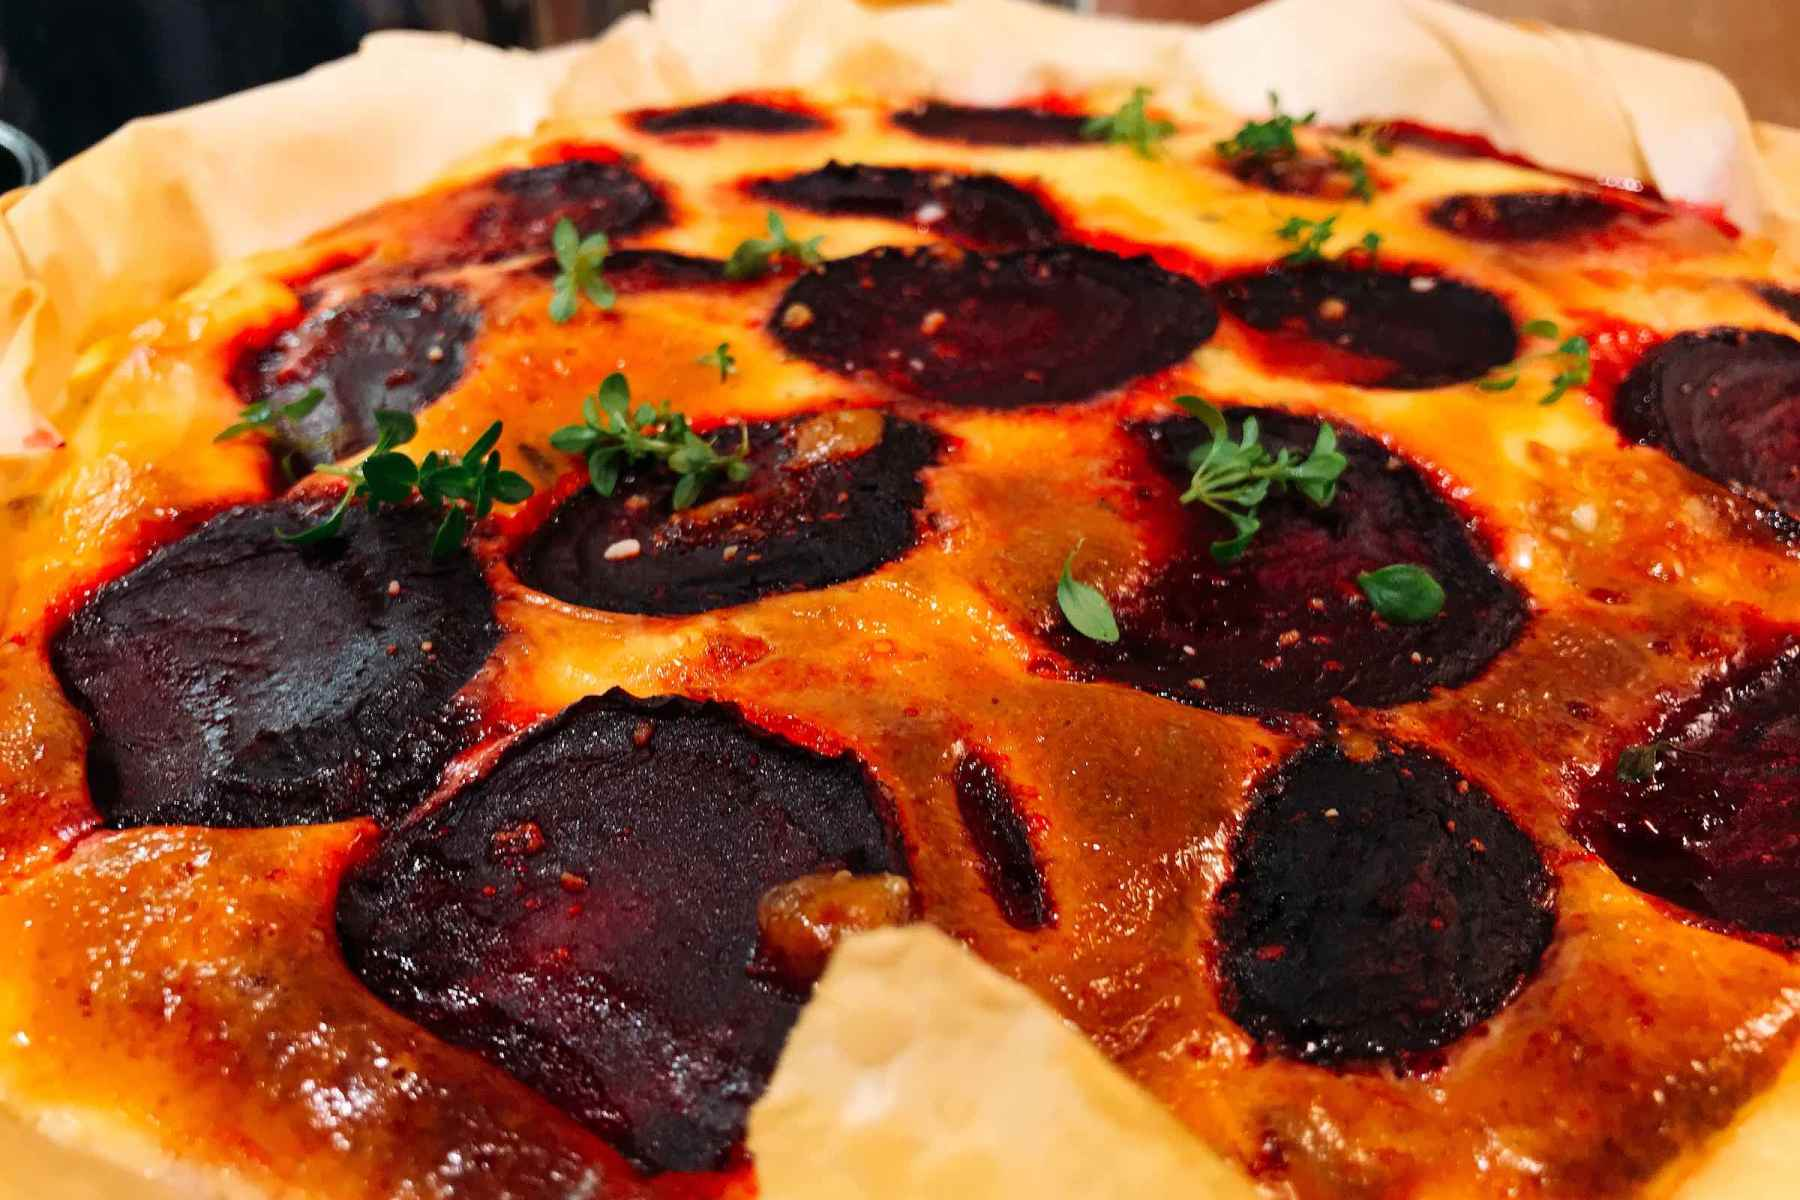 Beetroot and Goat's Cheese Quiche